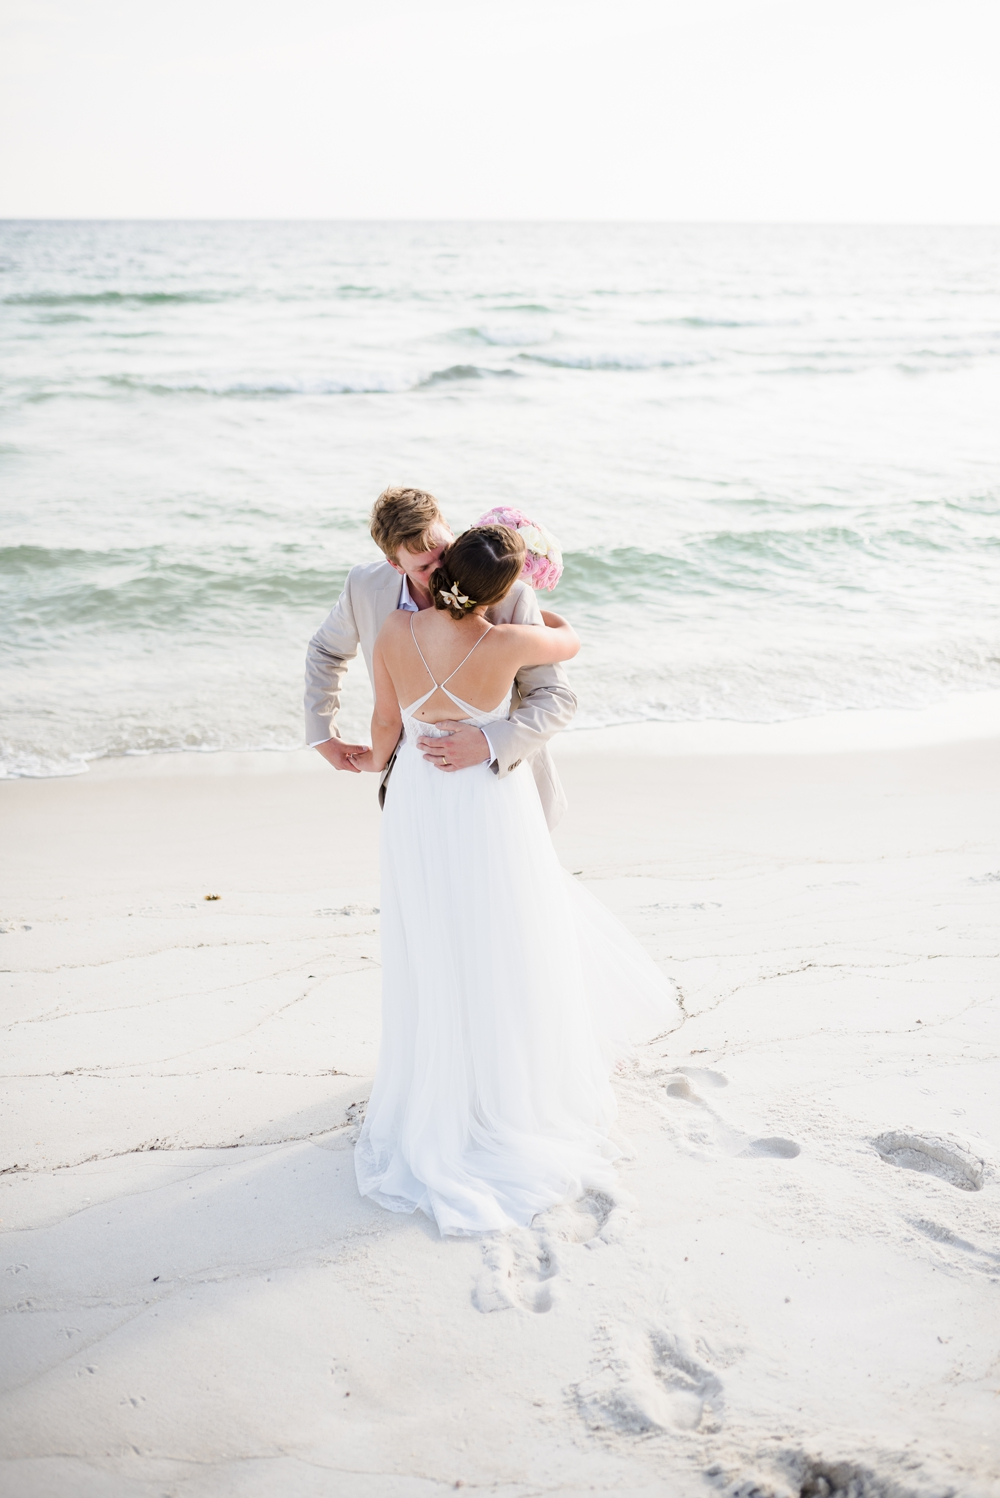 florida-wedding-photographer-kiersten-grant-86.jpg